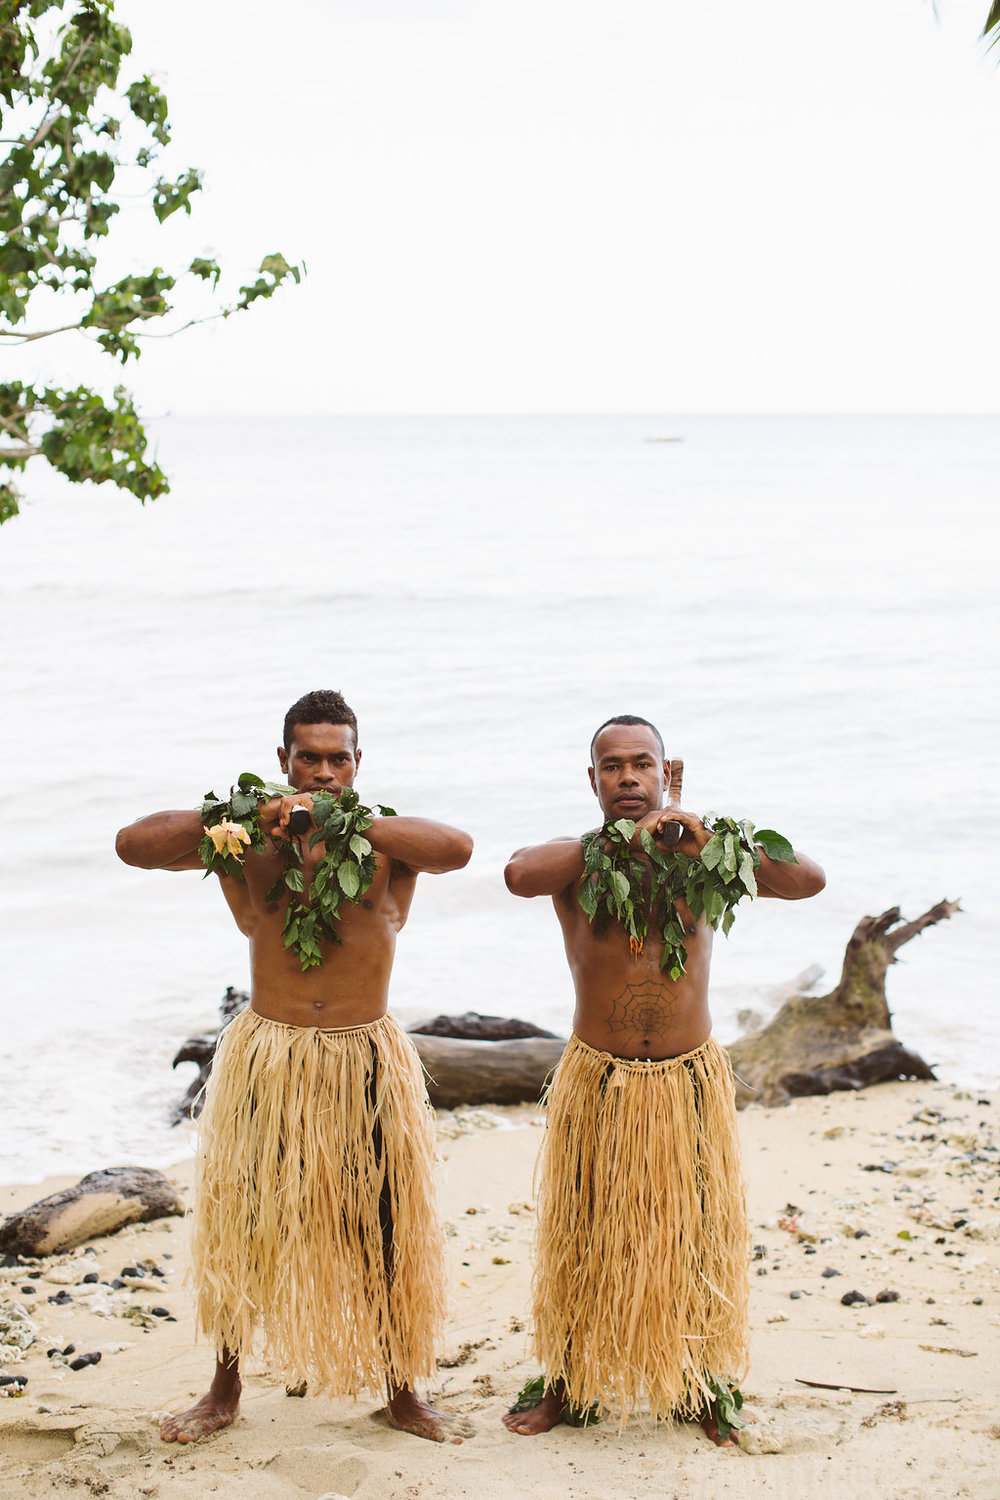 Fijian Wedding Warriors - Luxury Fiji Wedding or Elopement - The Remote Resort Fiji Islands - Off the beaten path ceremonies